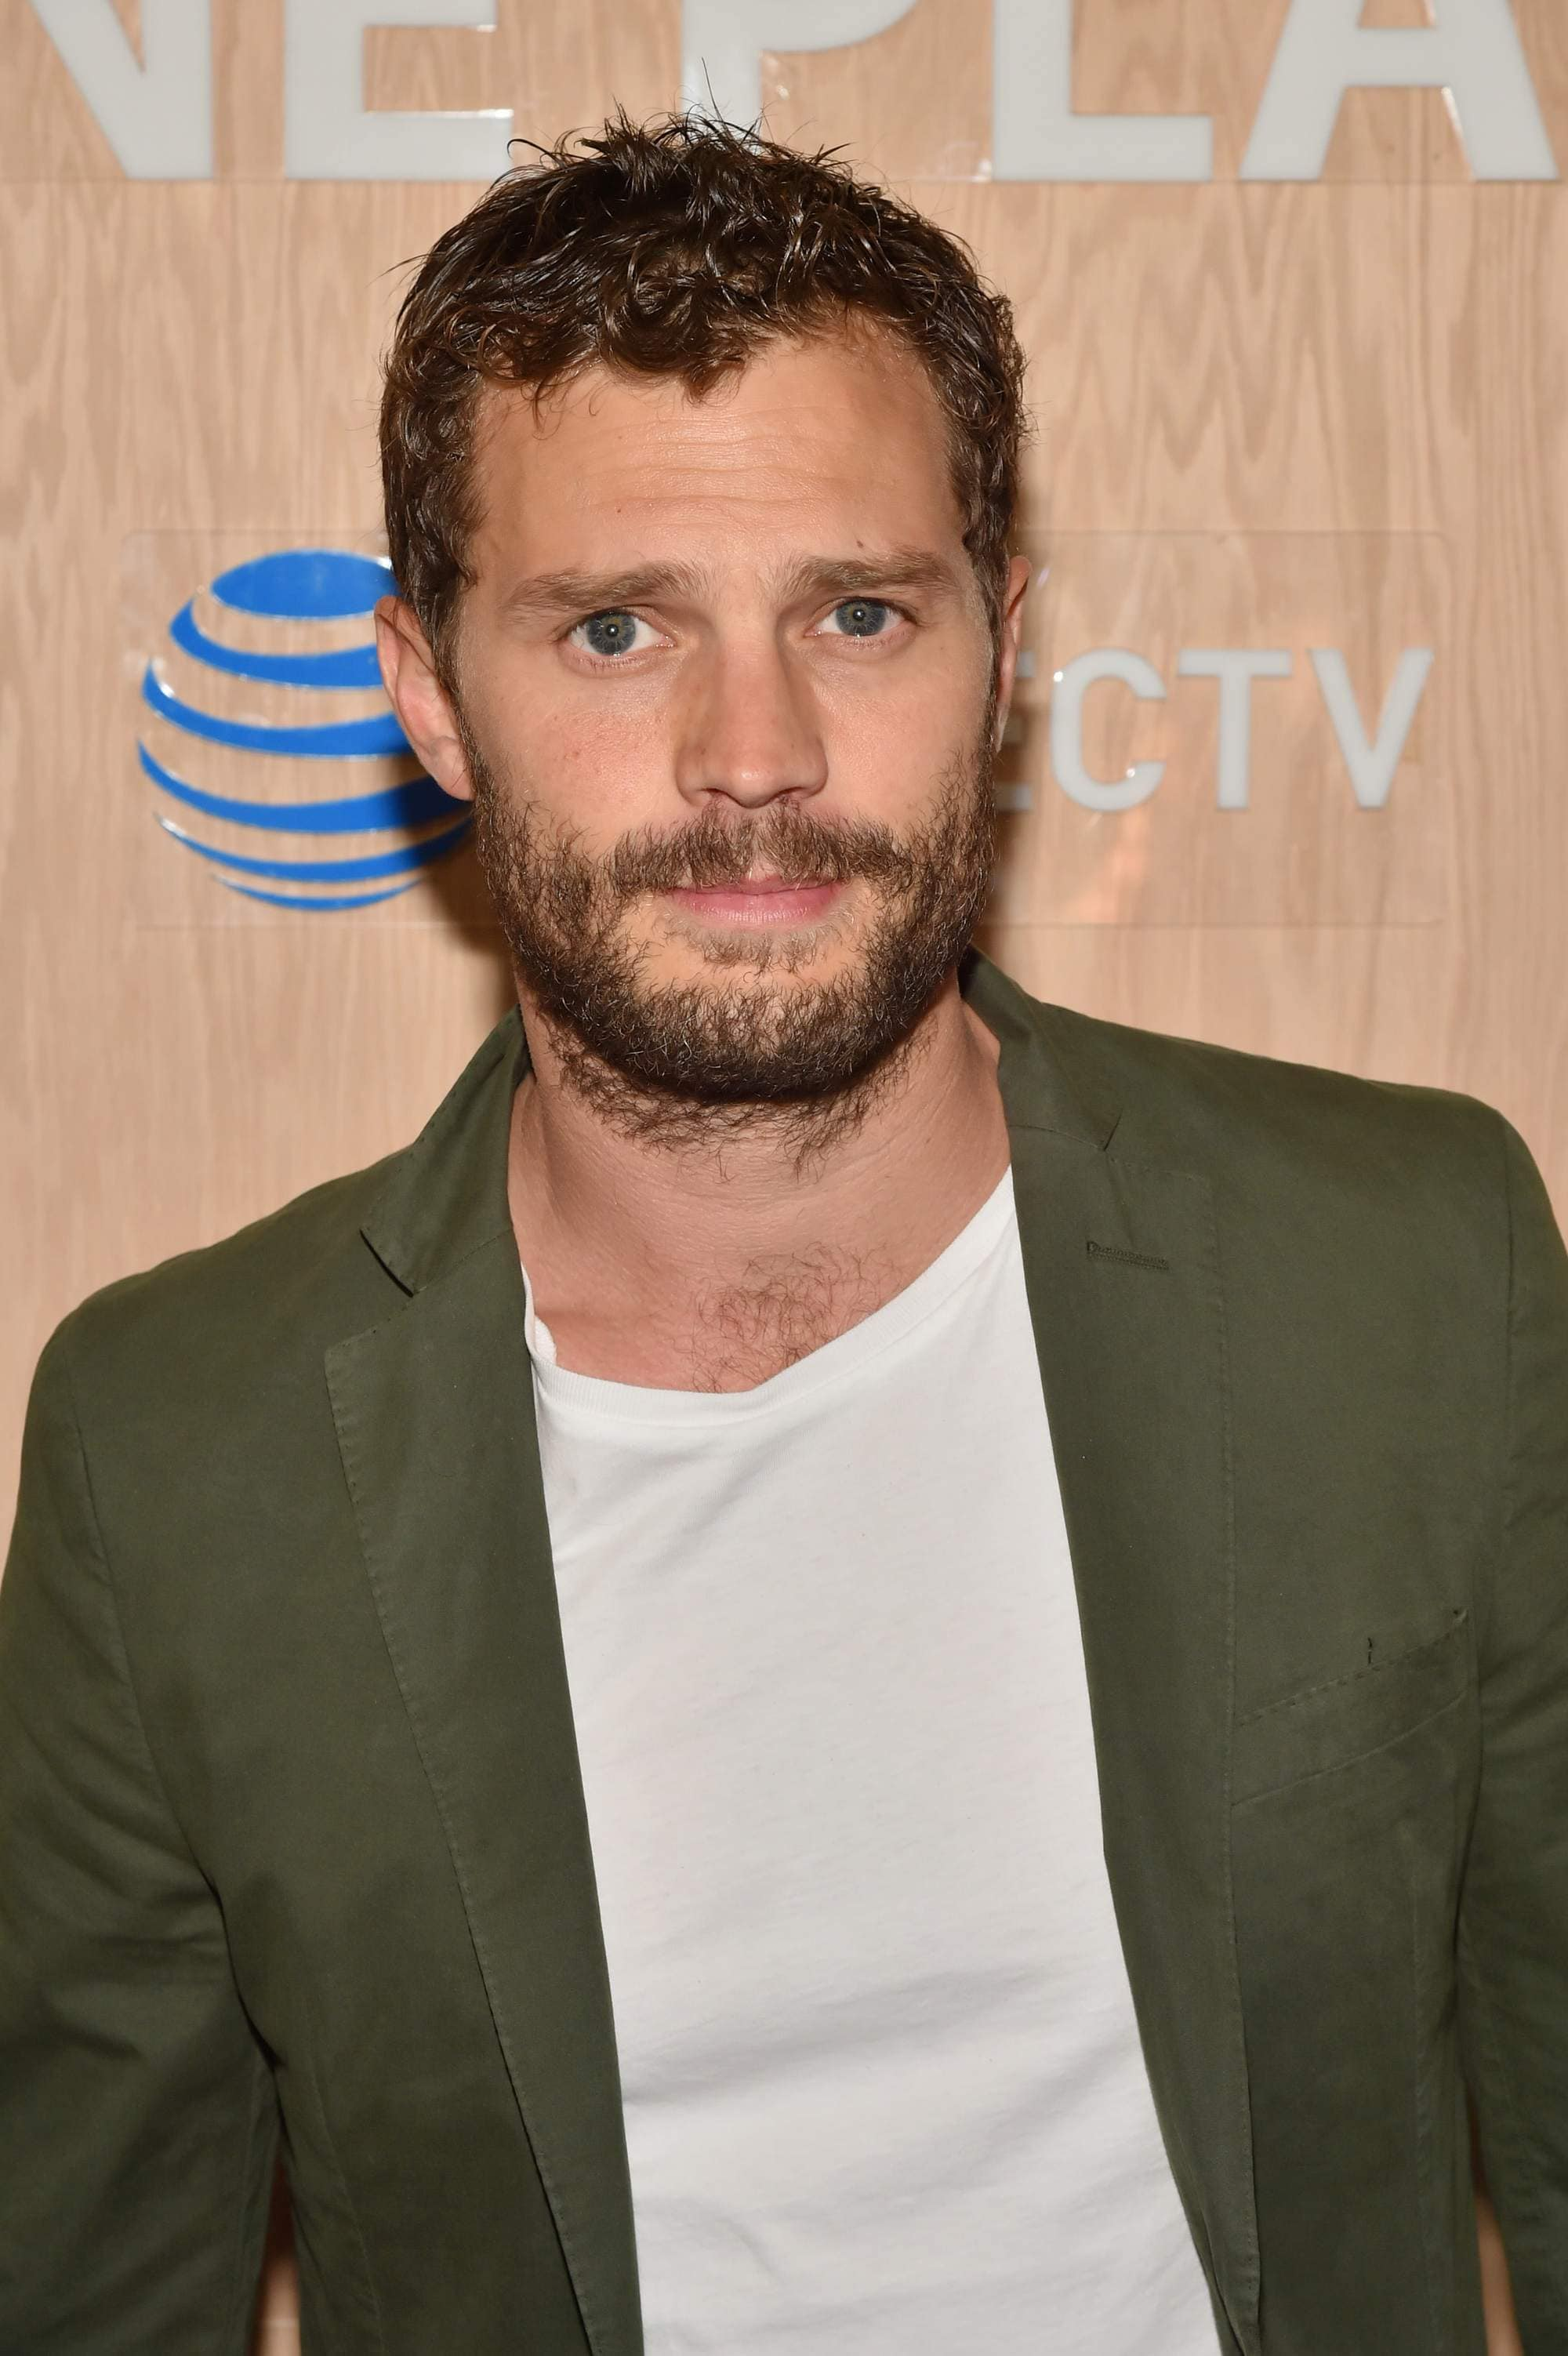 50 shades of grey actor jamie dornan with curly bedhead hair